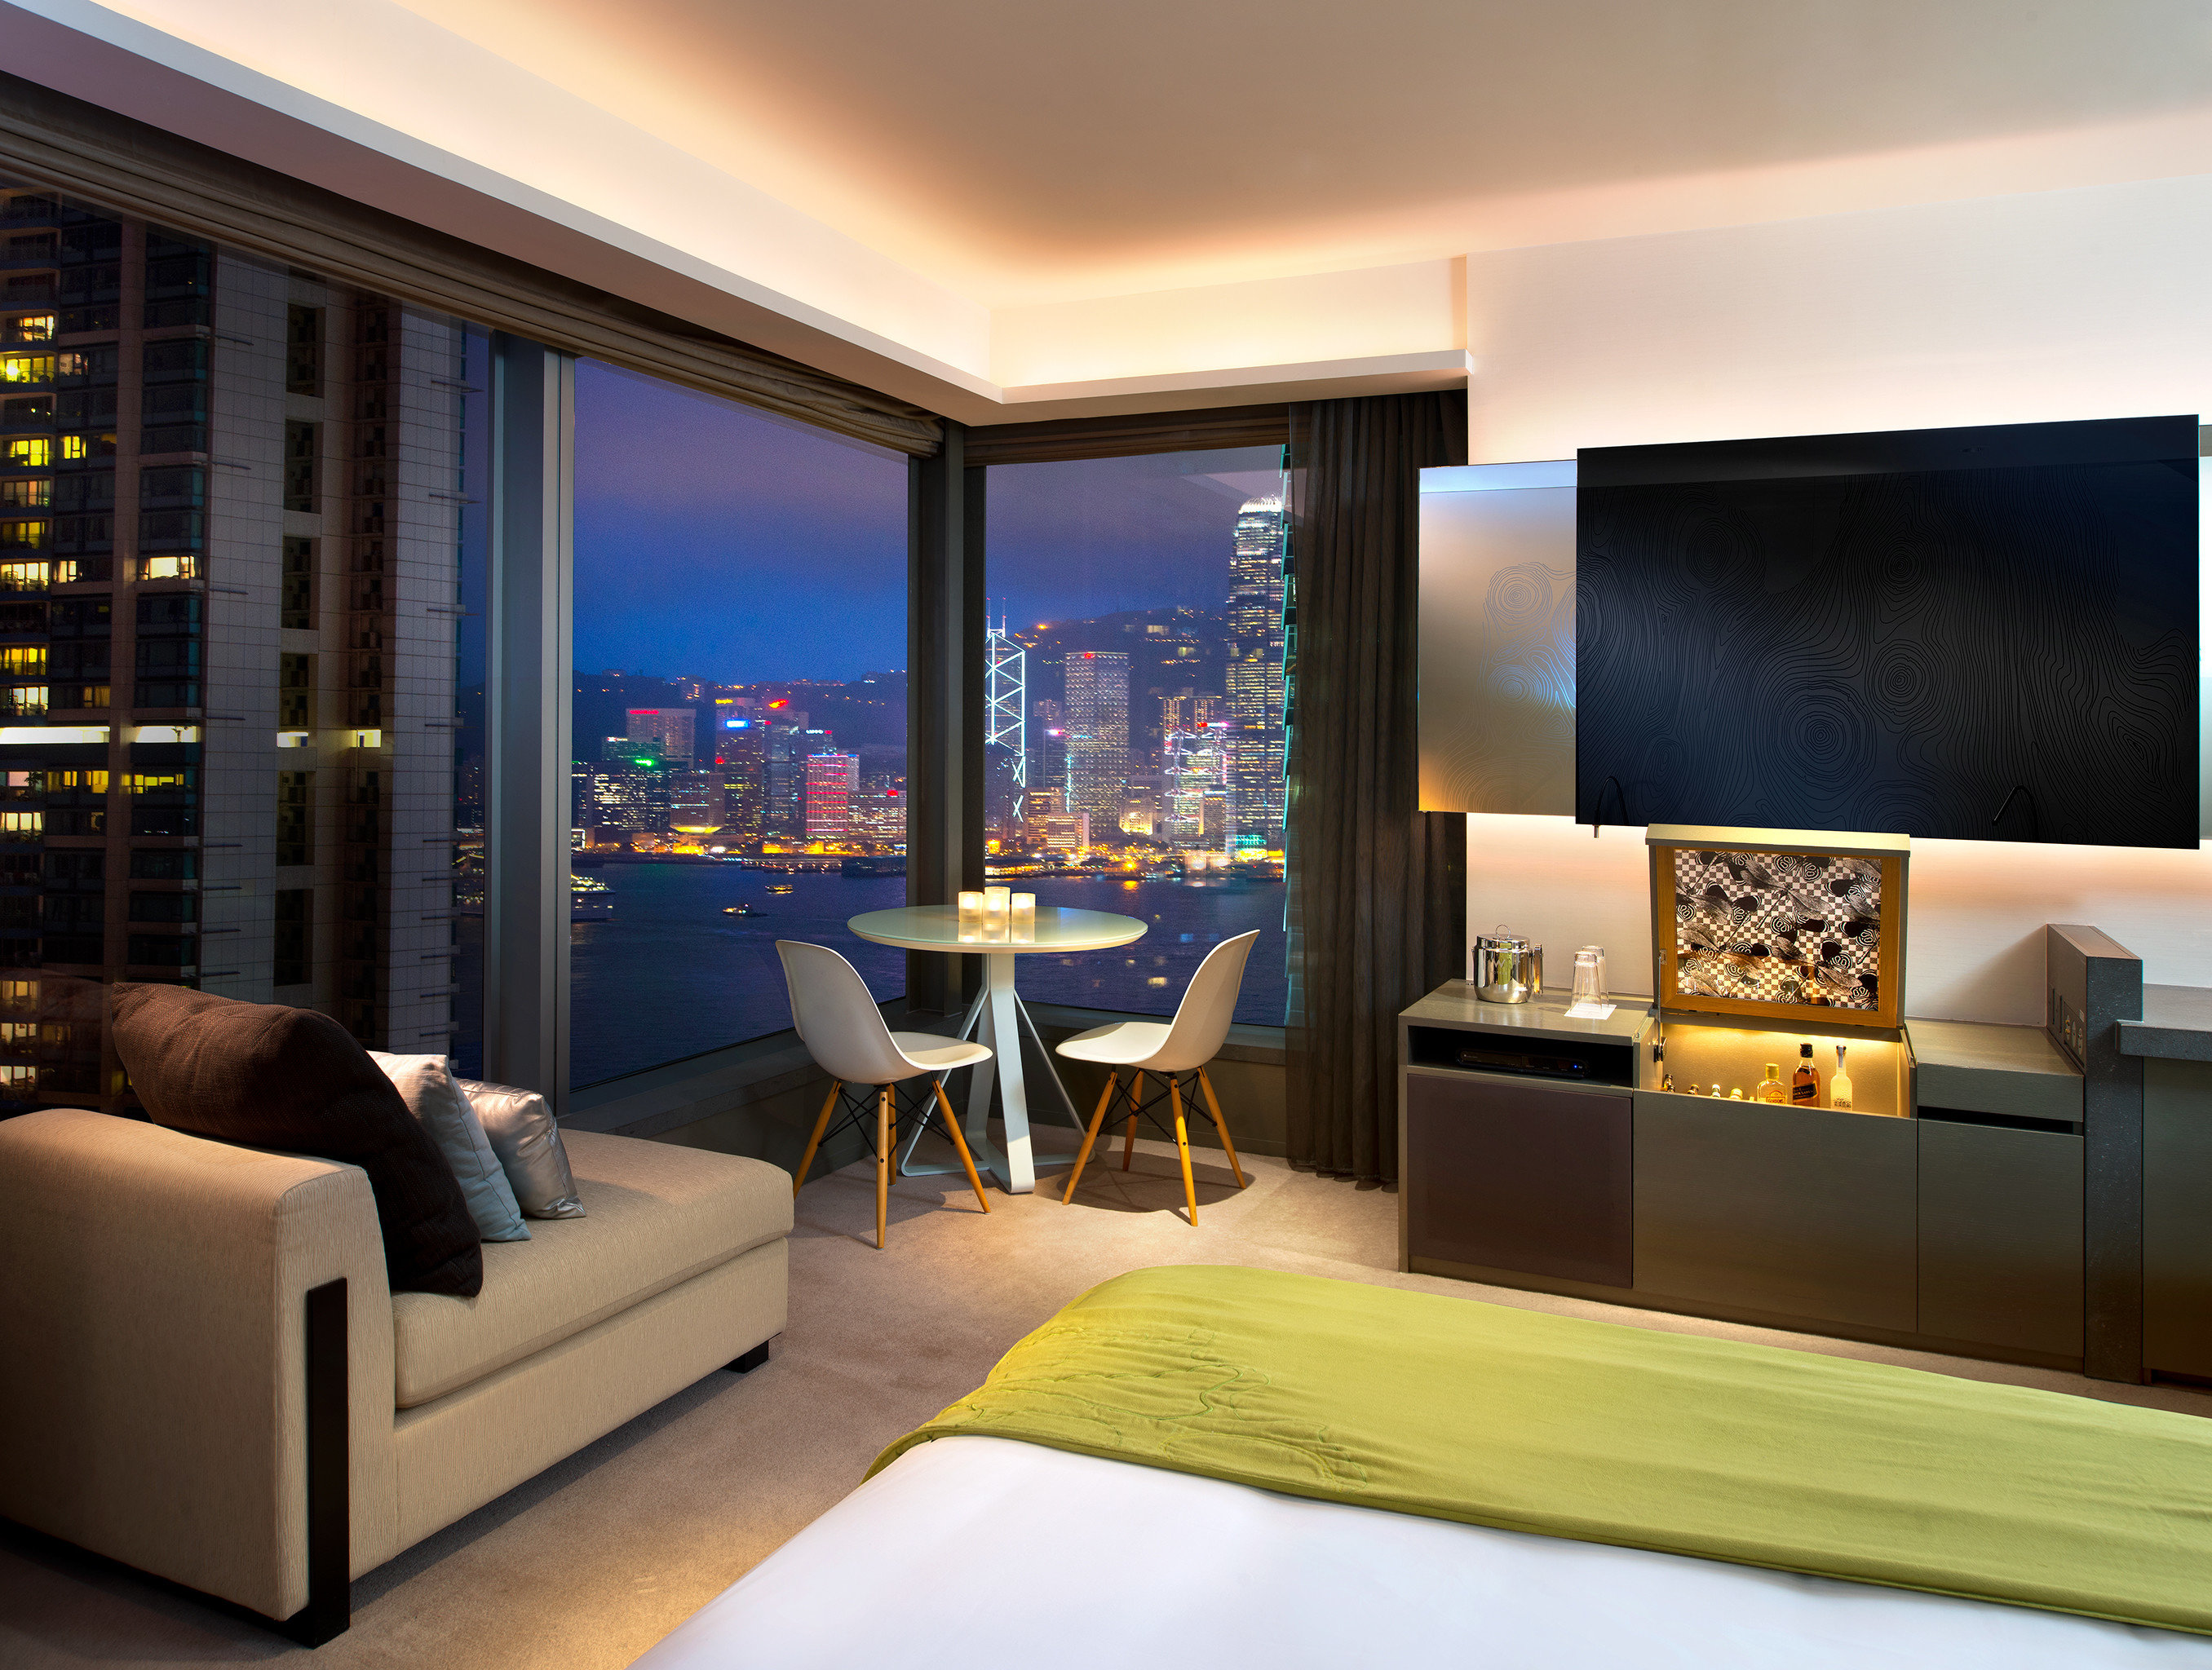 Bedroom Business City Scenic views property living room Suite condominium home Lobby Modern